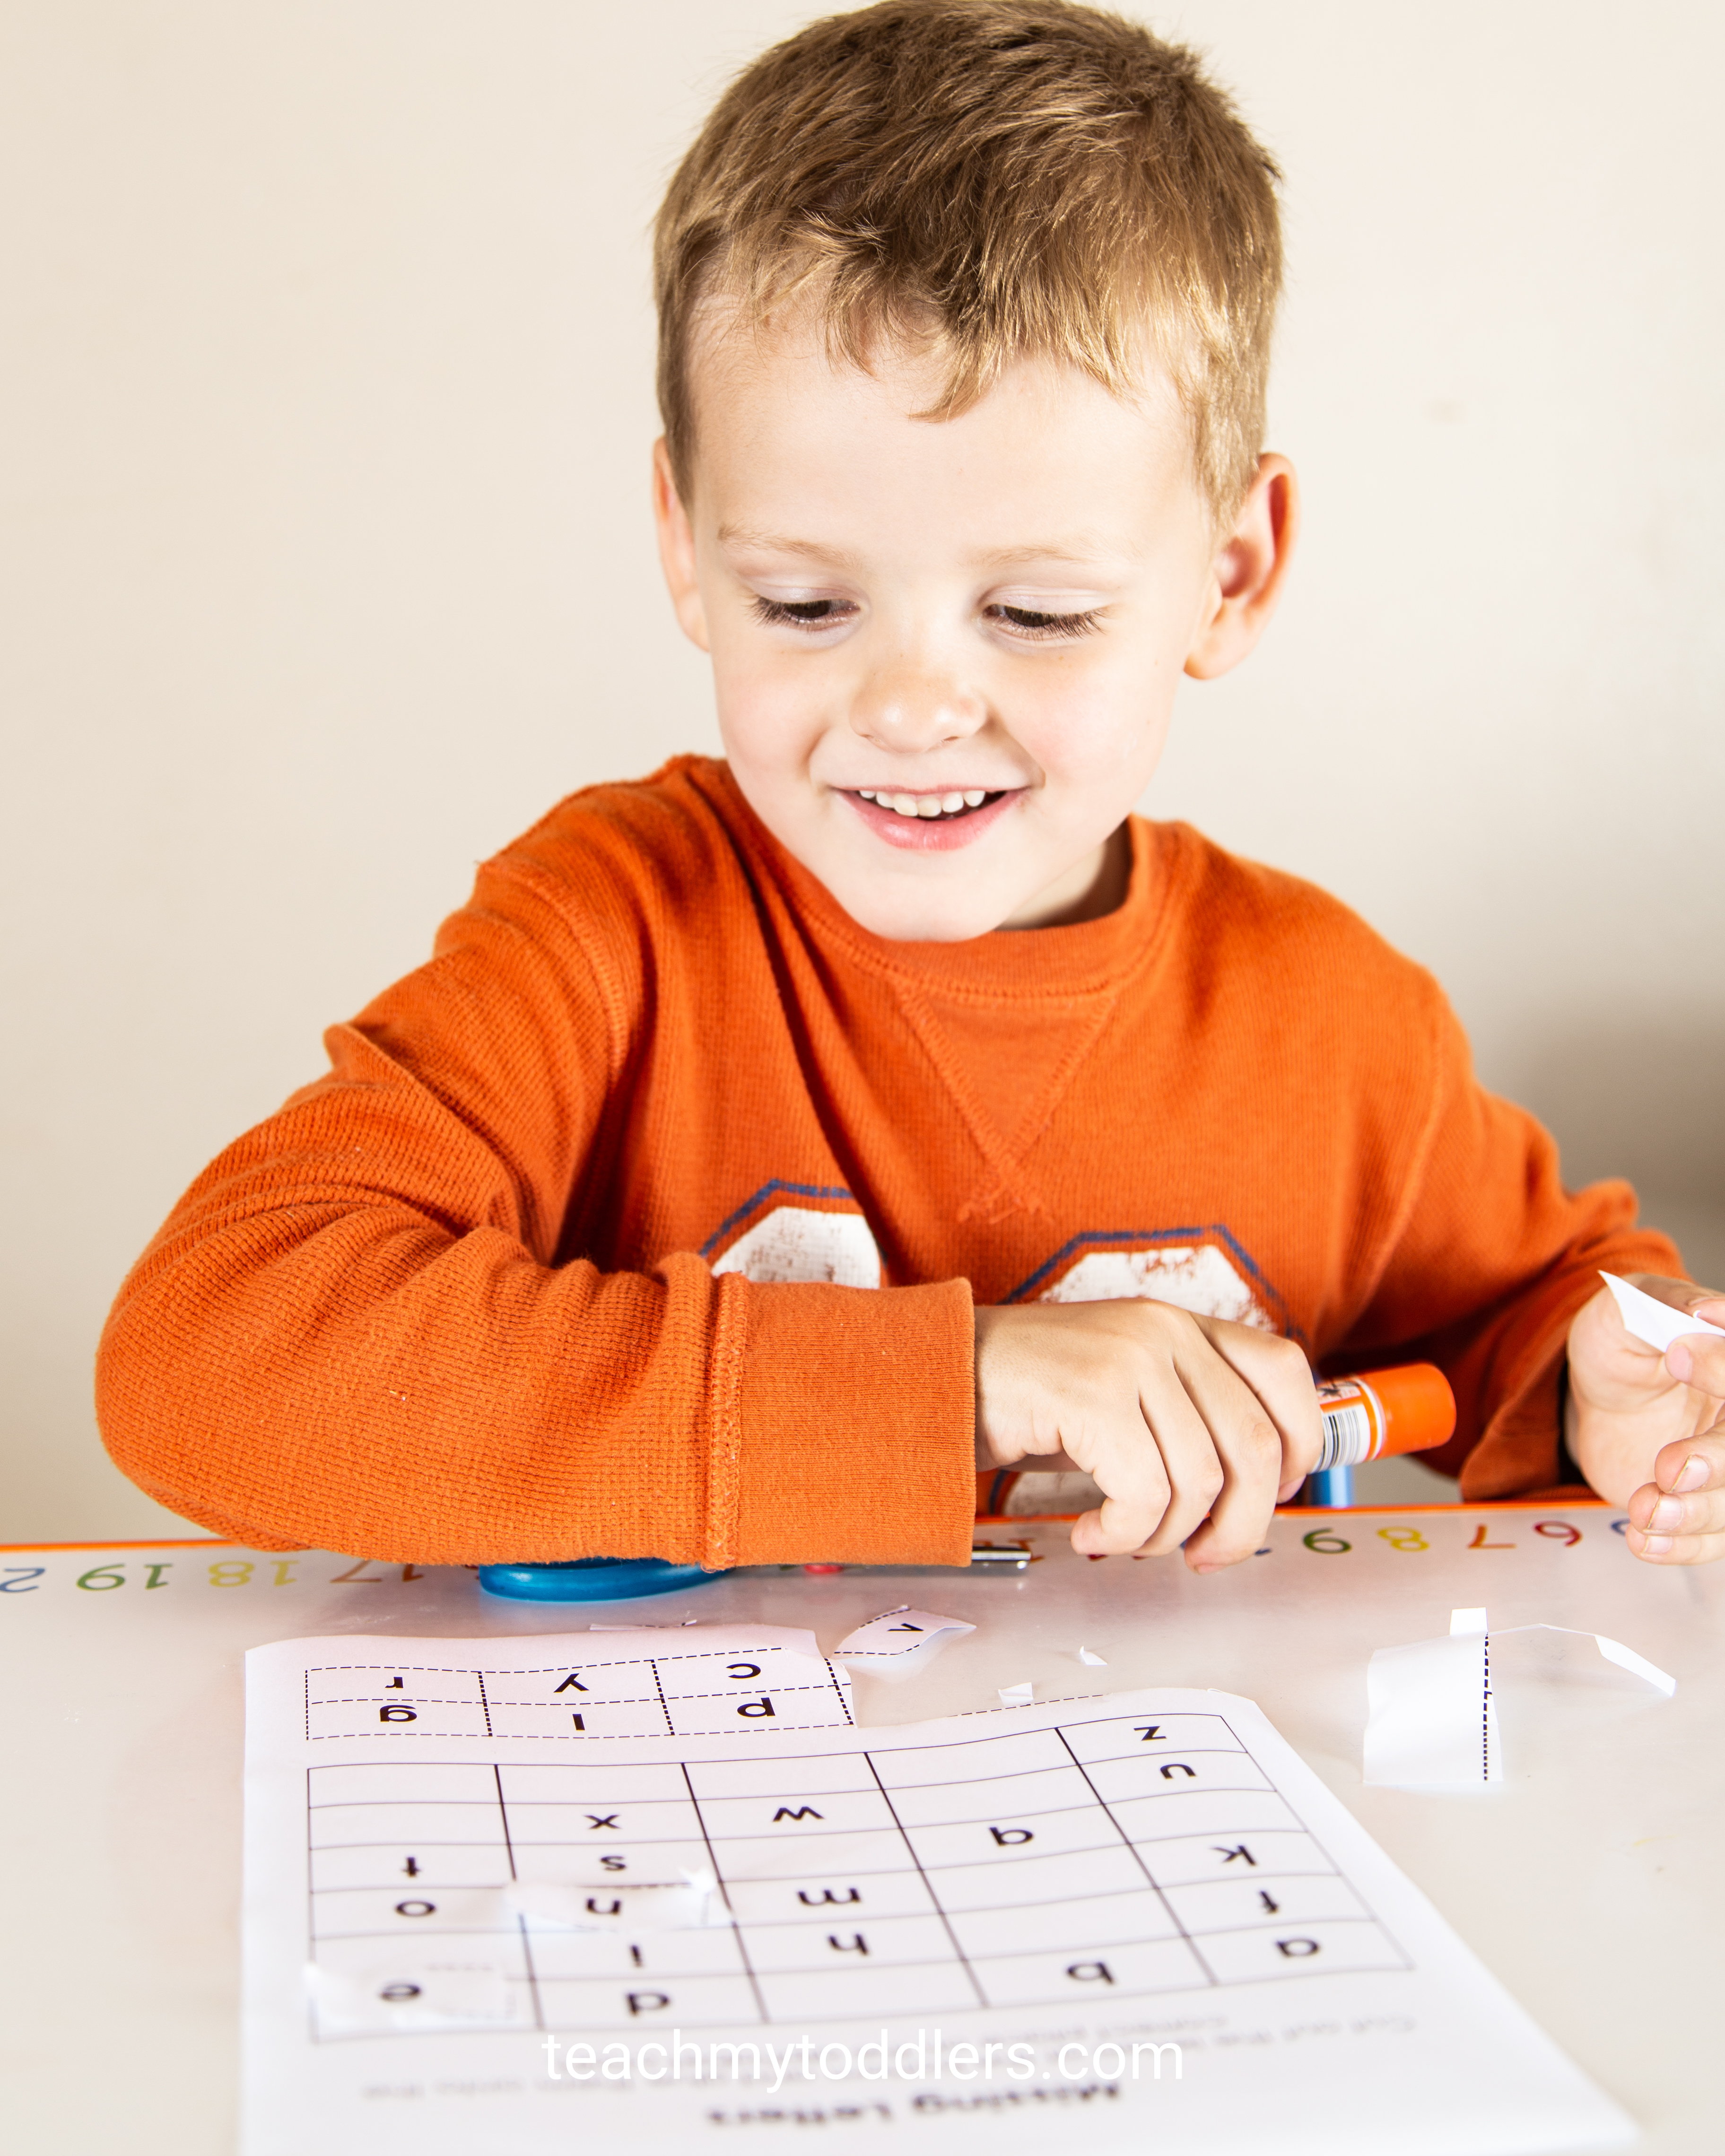 Learn when to teach letters, numbers, colors and shapes to your toddlers